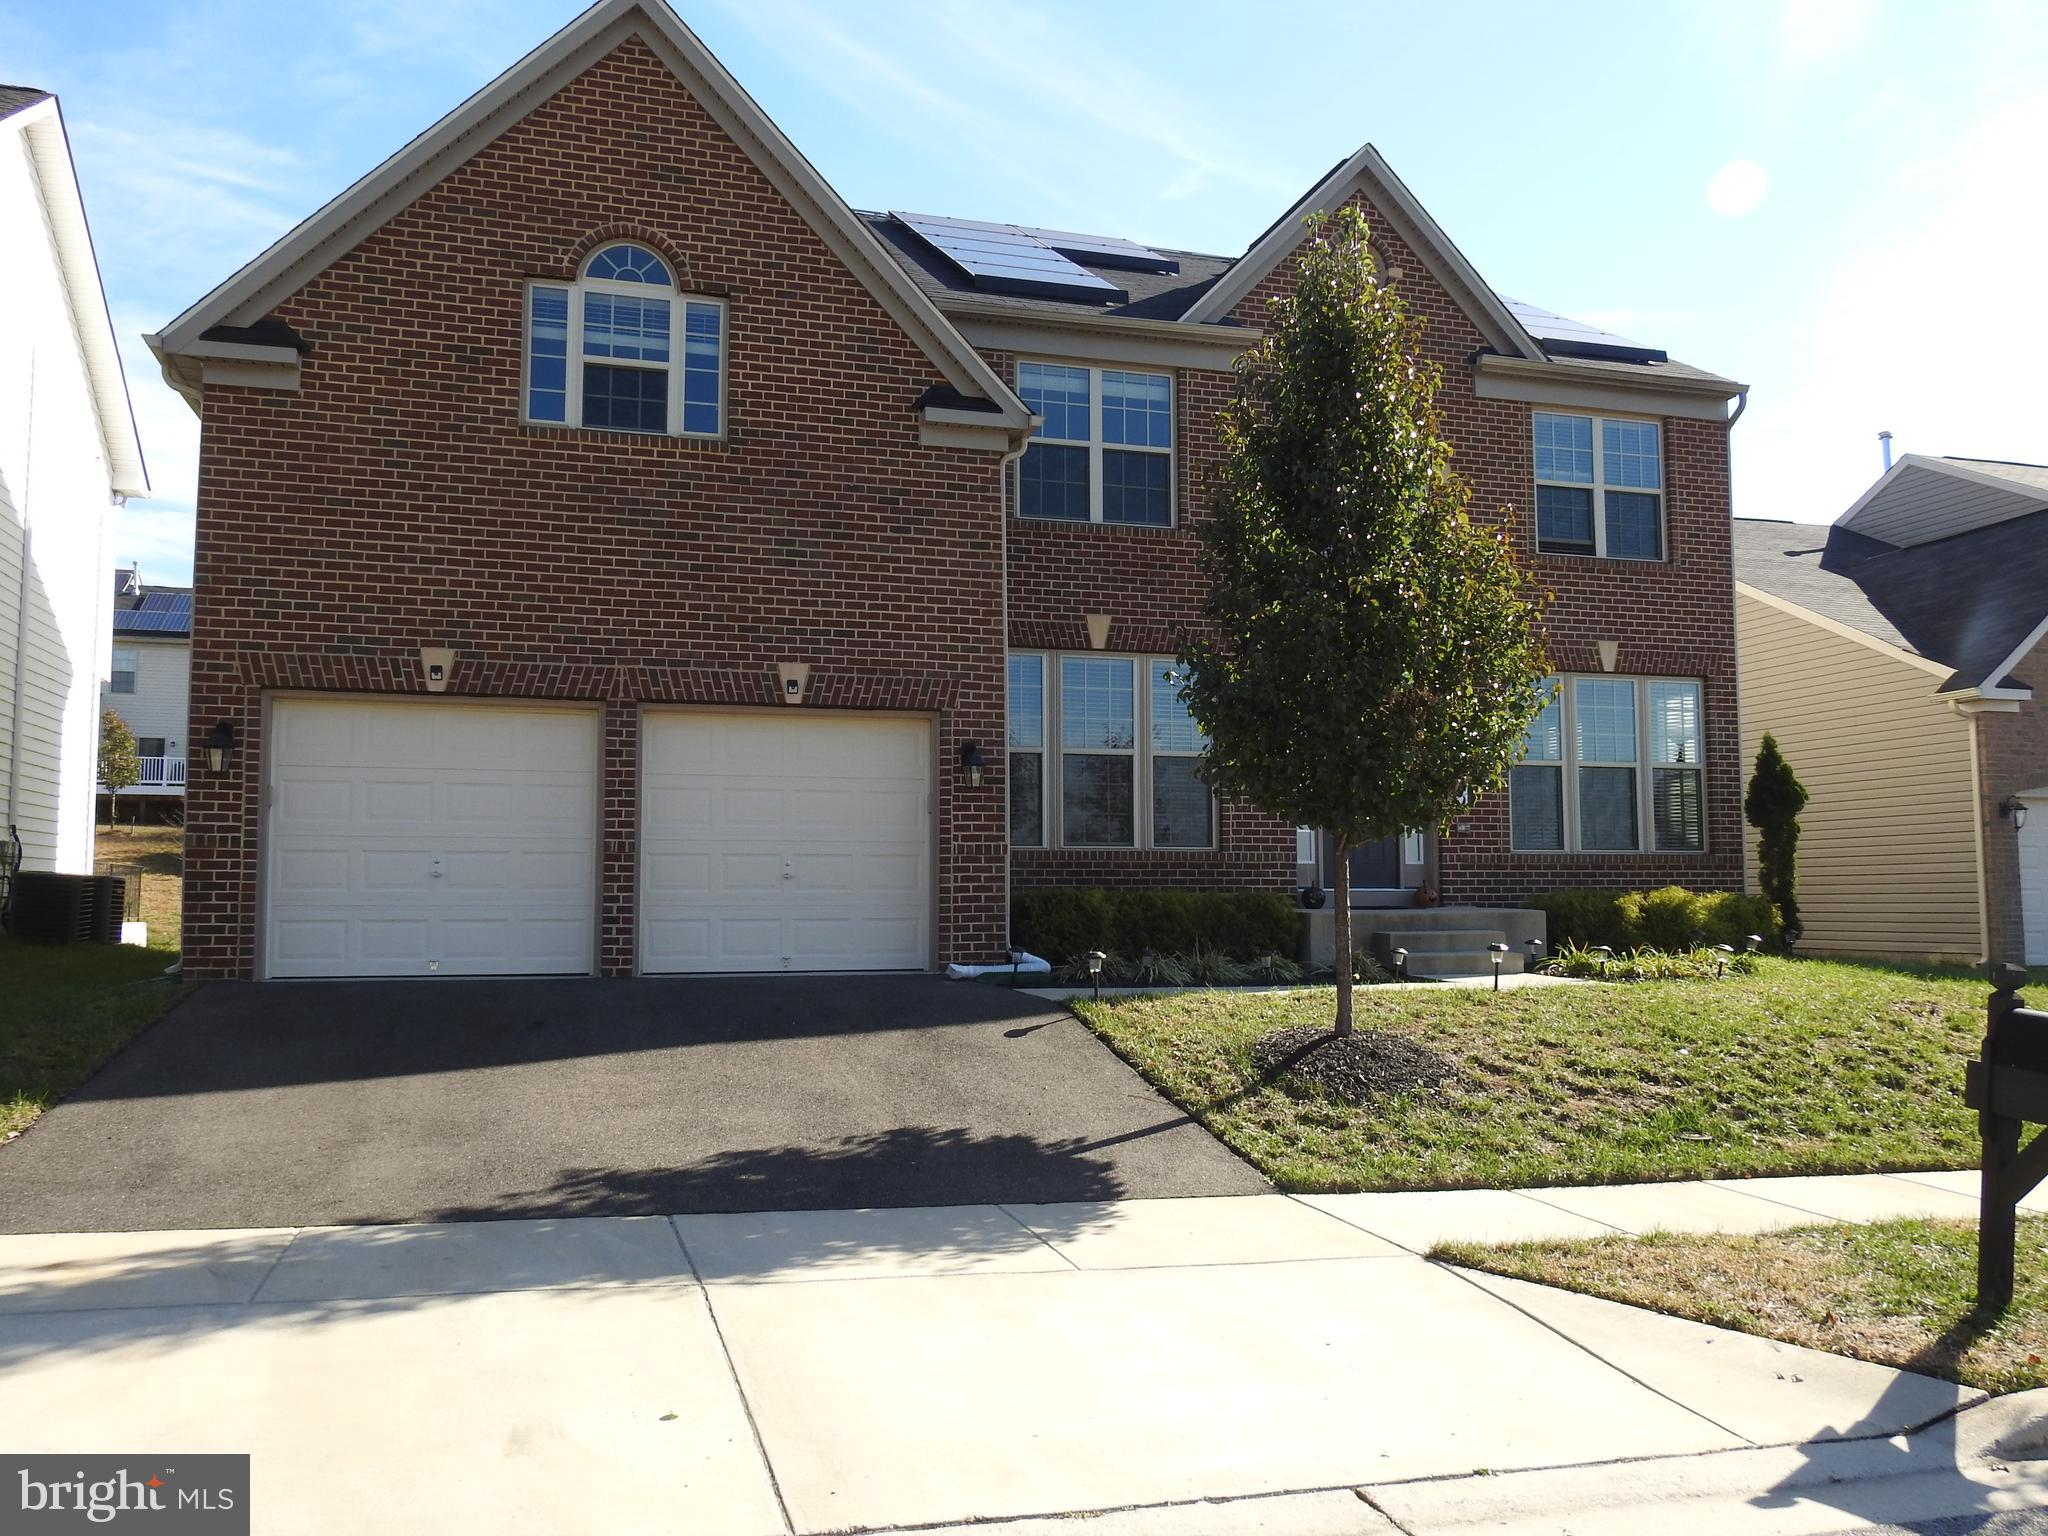 2607 ADMIRAL RIDGE ROAD, ACCOKEEK, MD 20607